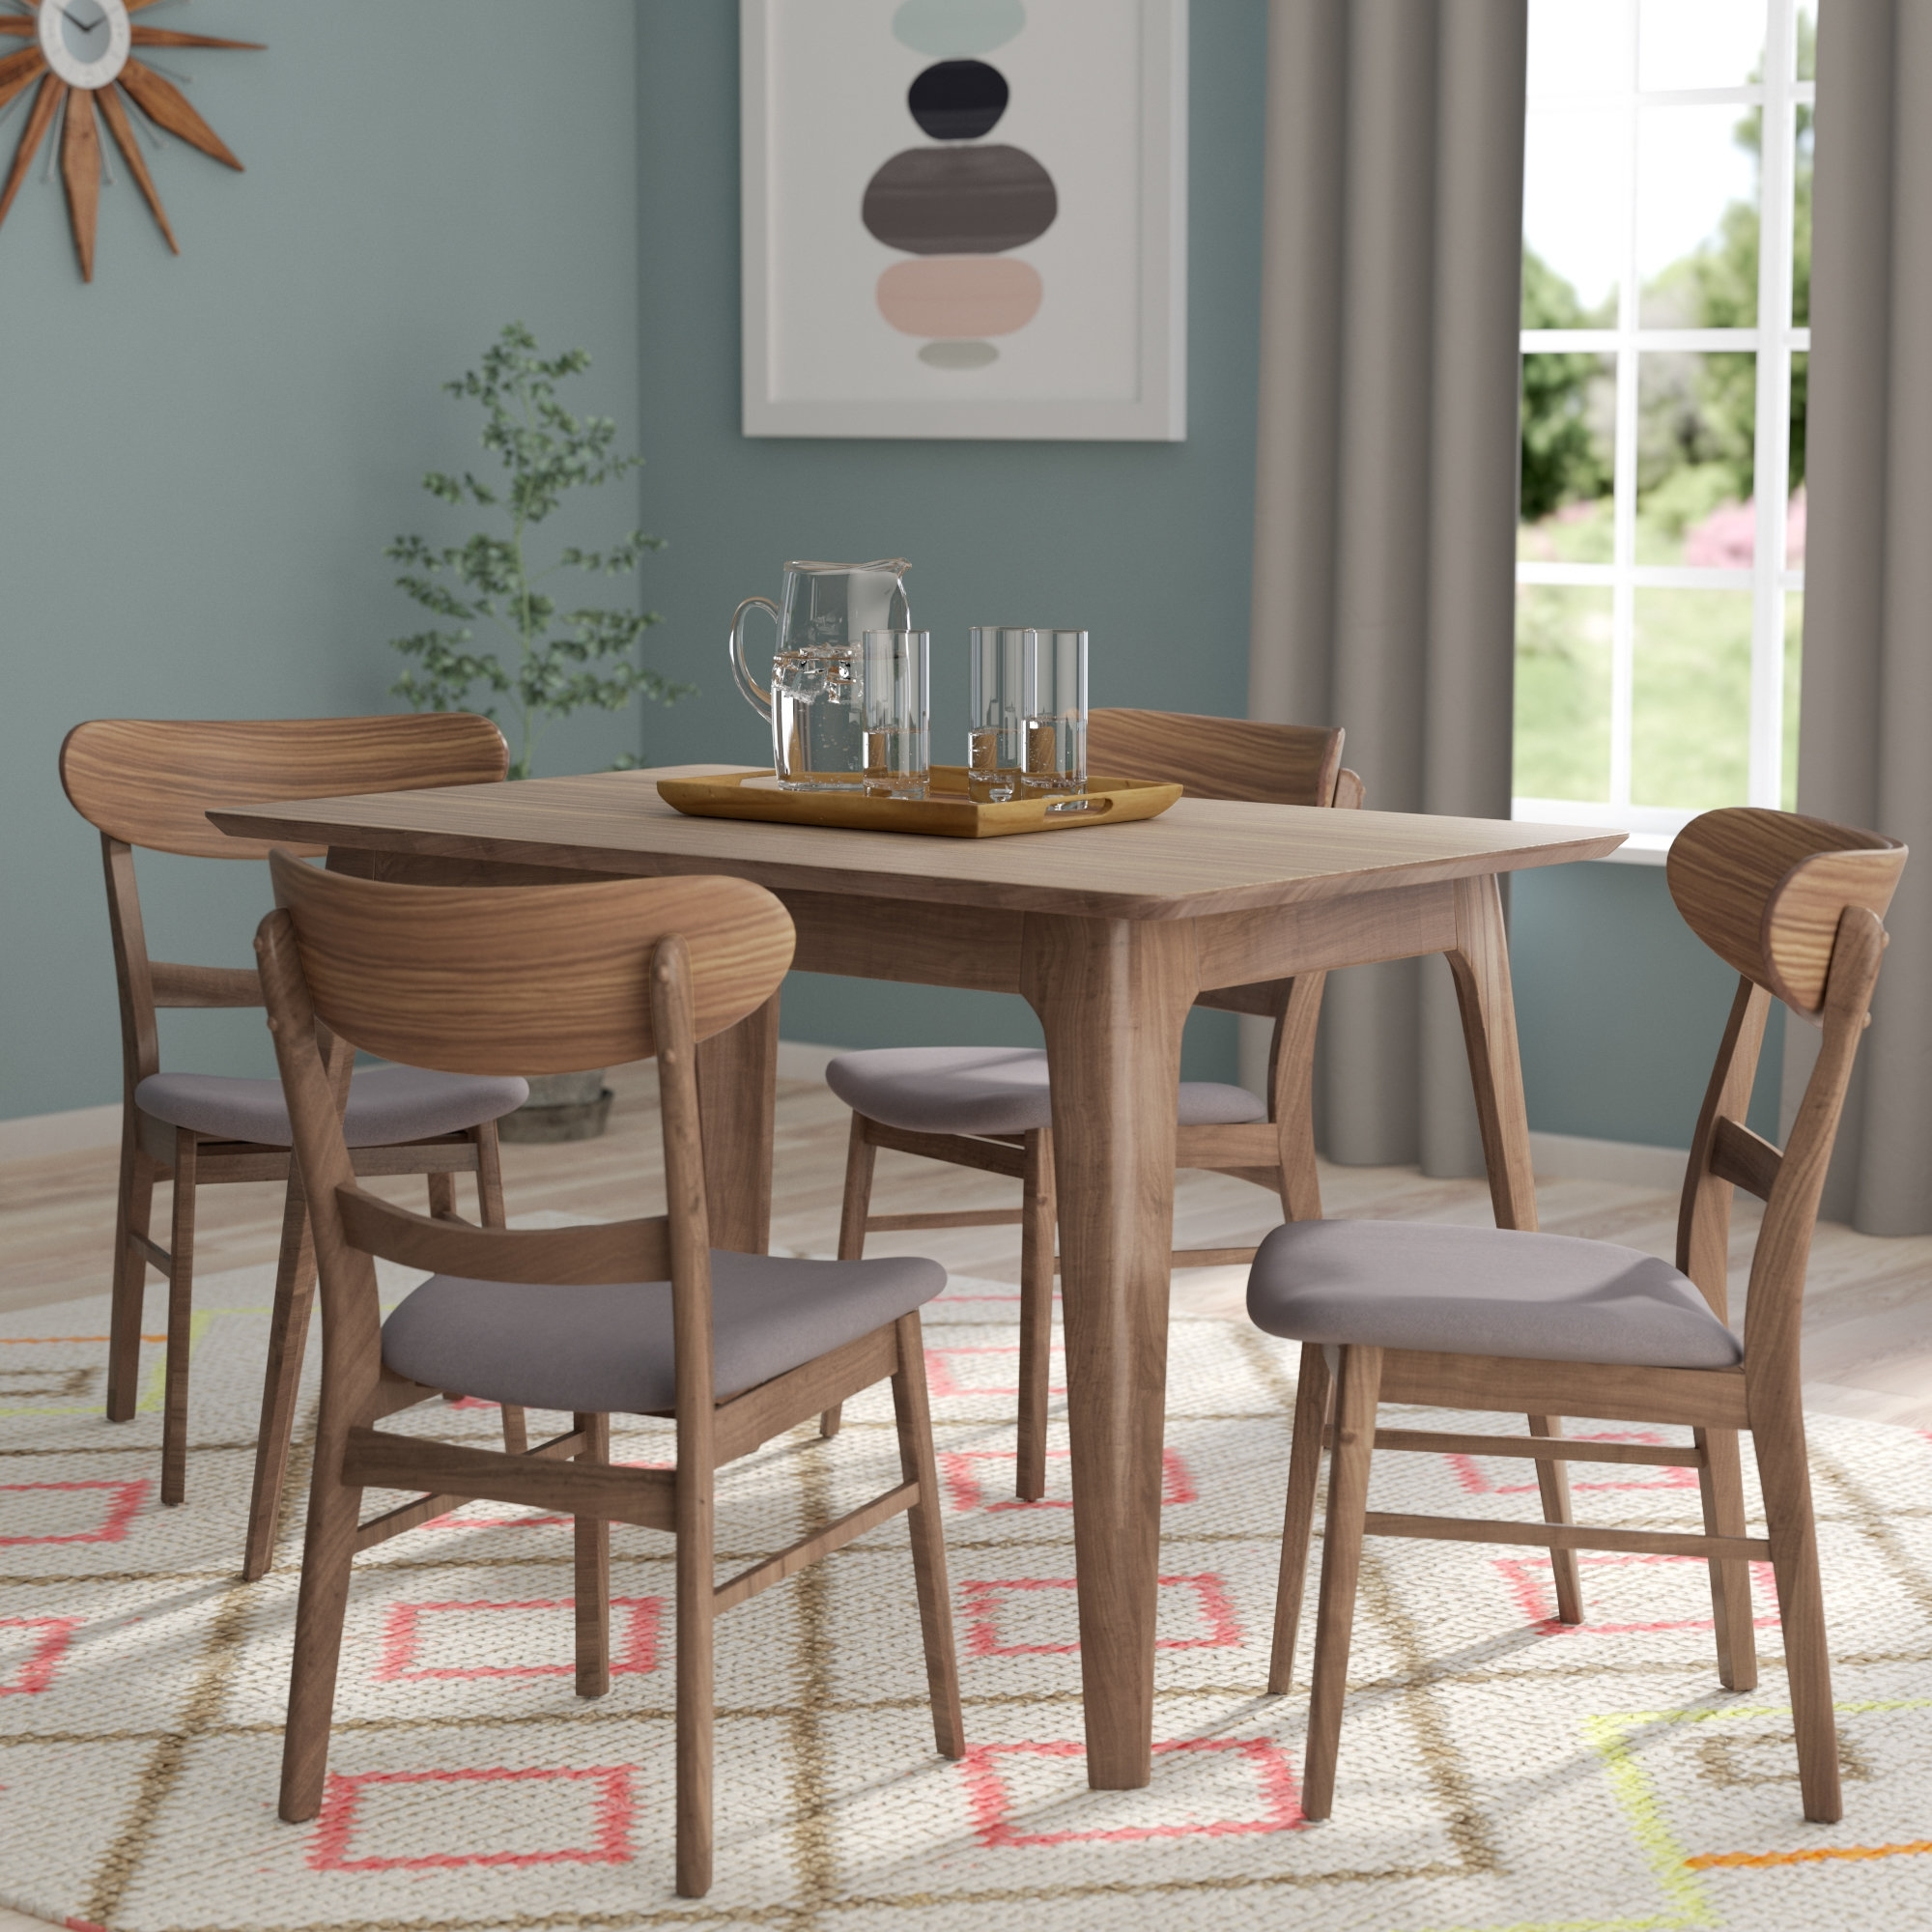 Craftsman 5 Piece Round Dining Sets With Side Chairs For Preferred Langley Street Yolanda 5 Piece Wood Dining Set & Reviews (View 6 of 25)